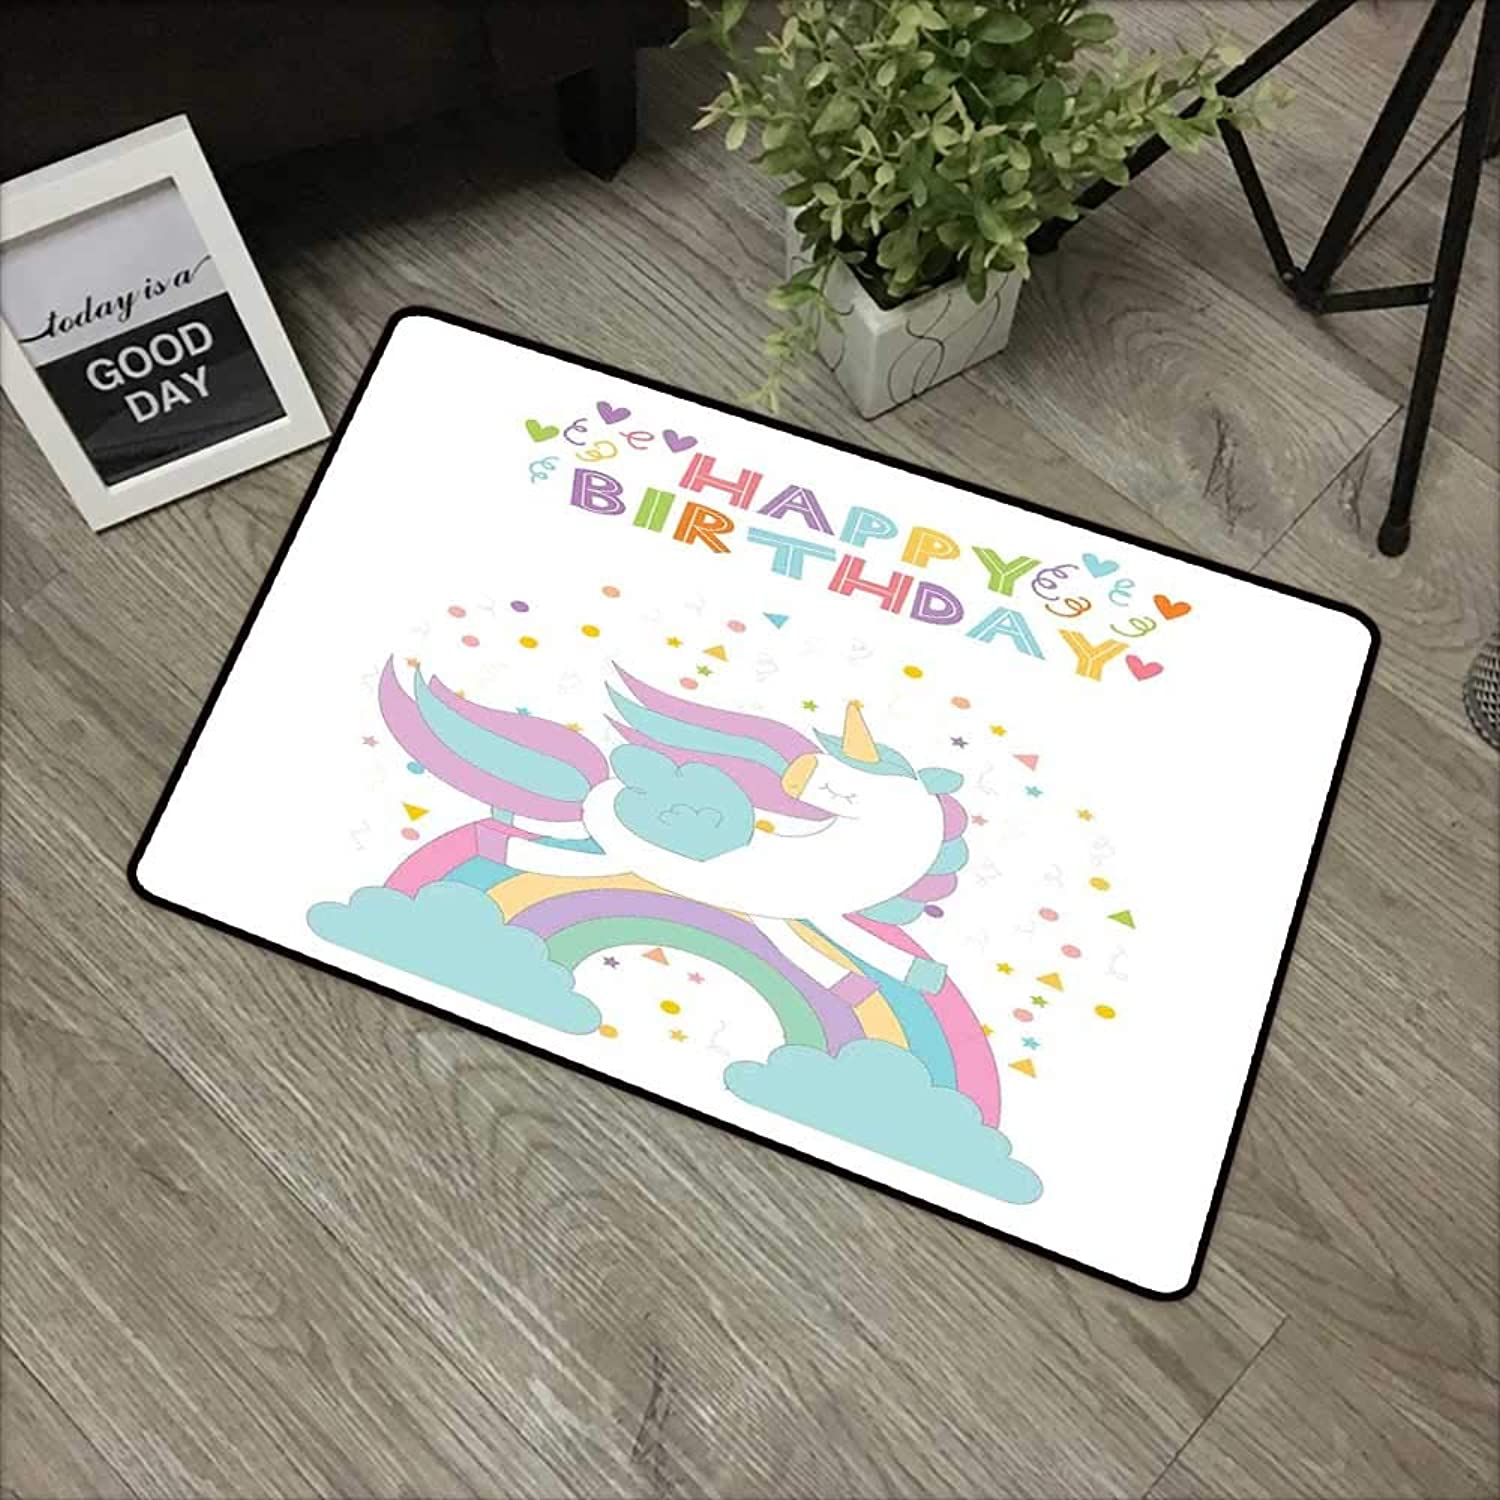 Learning pad W35 x L59 INCH Unicorn Party,Mythical Horse Jumping Above The Rainbow Festive Happy Birthday Calligraphy,Multicolor with Non-Slip Backing Door Mat Carpet